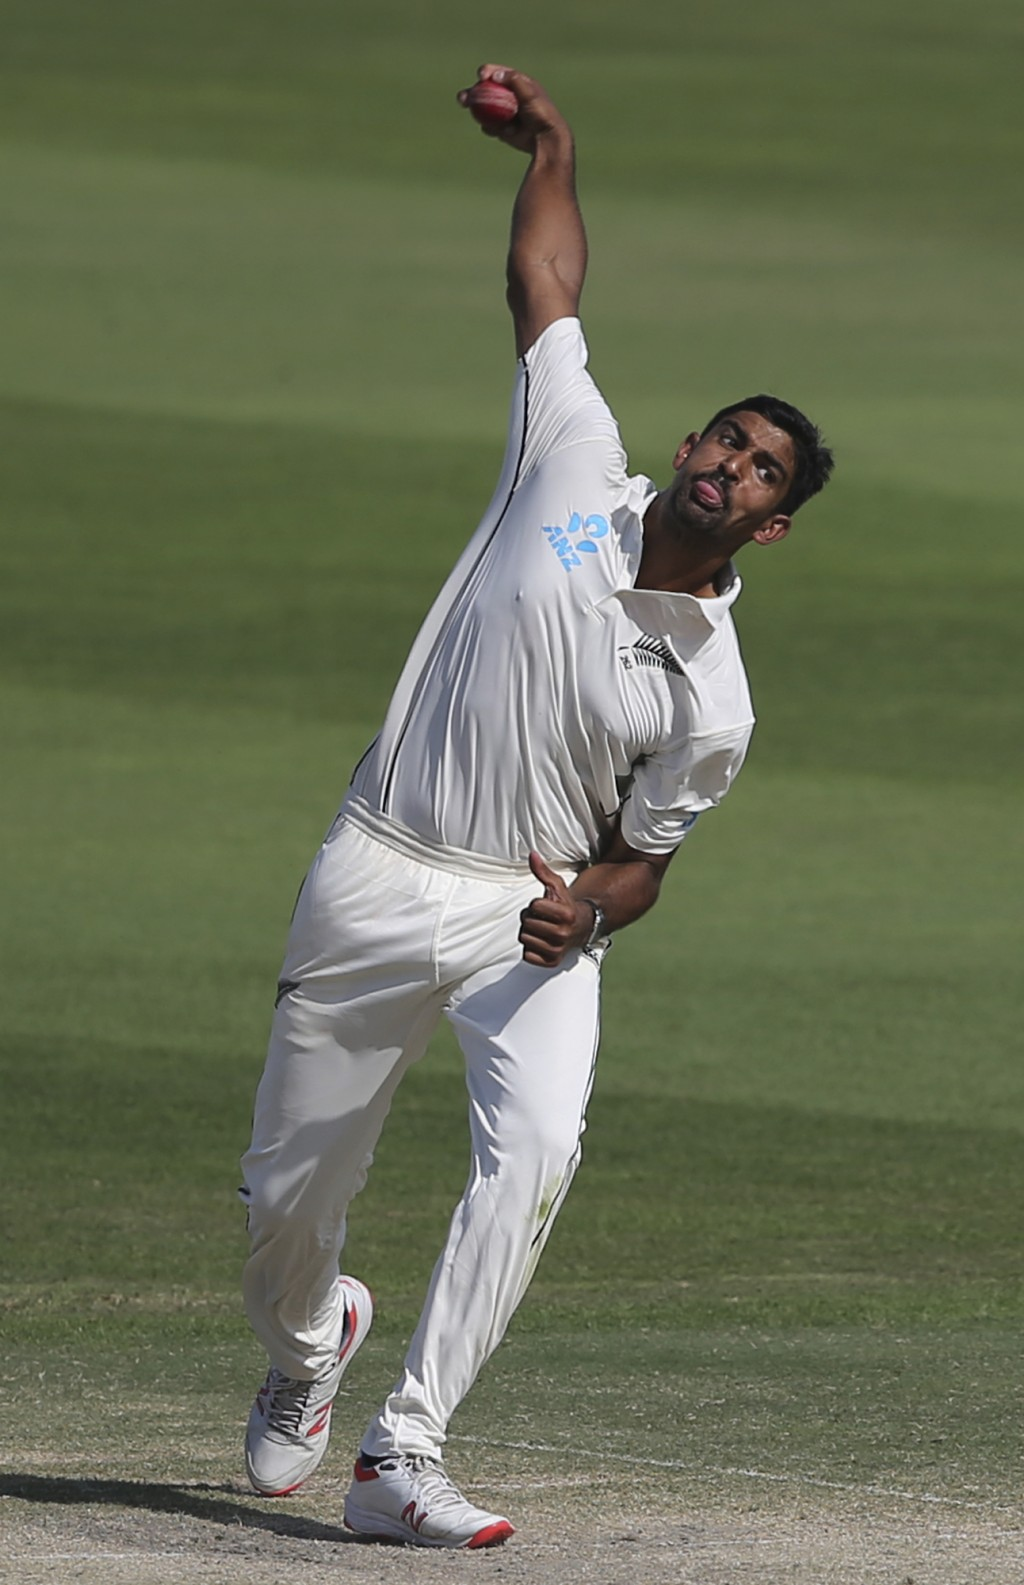 New Zealand's Ish Sodhi throws the ball in their test match against Pakistan in Abu Dhabi, United Arab Emirates, Monday, Nov. 19, 2018. (AP Photo/Kamr